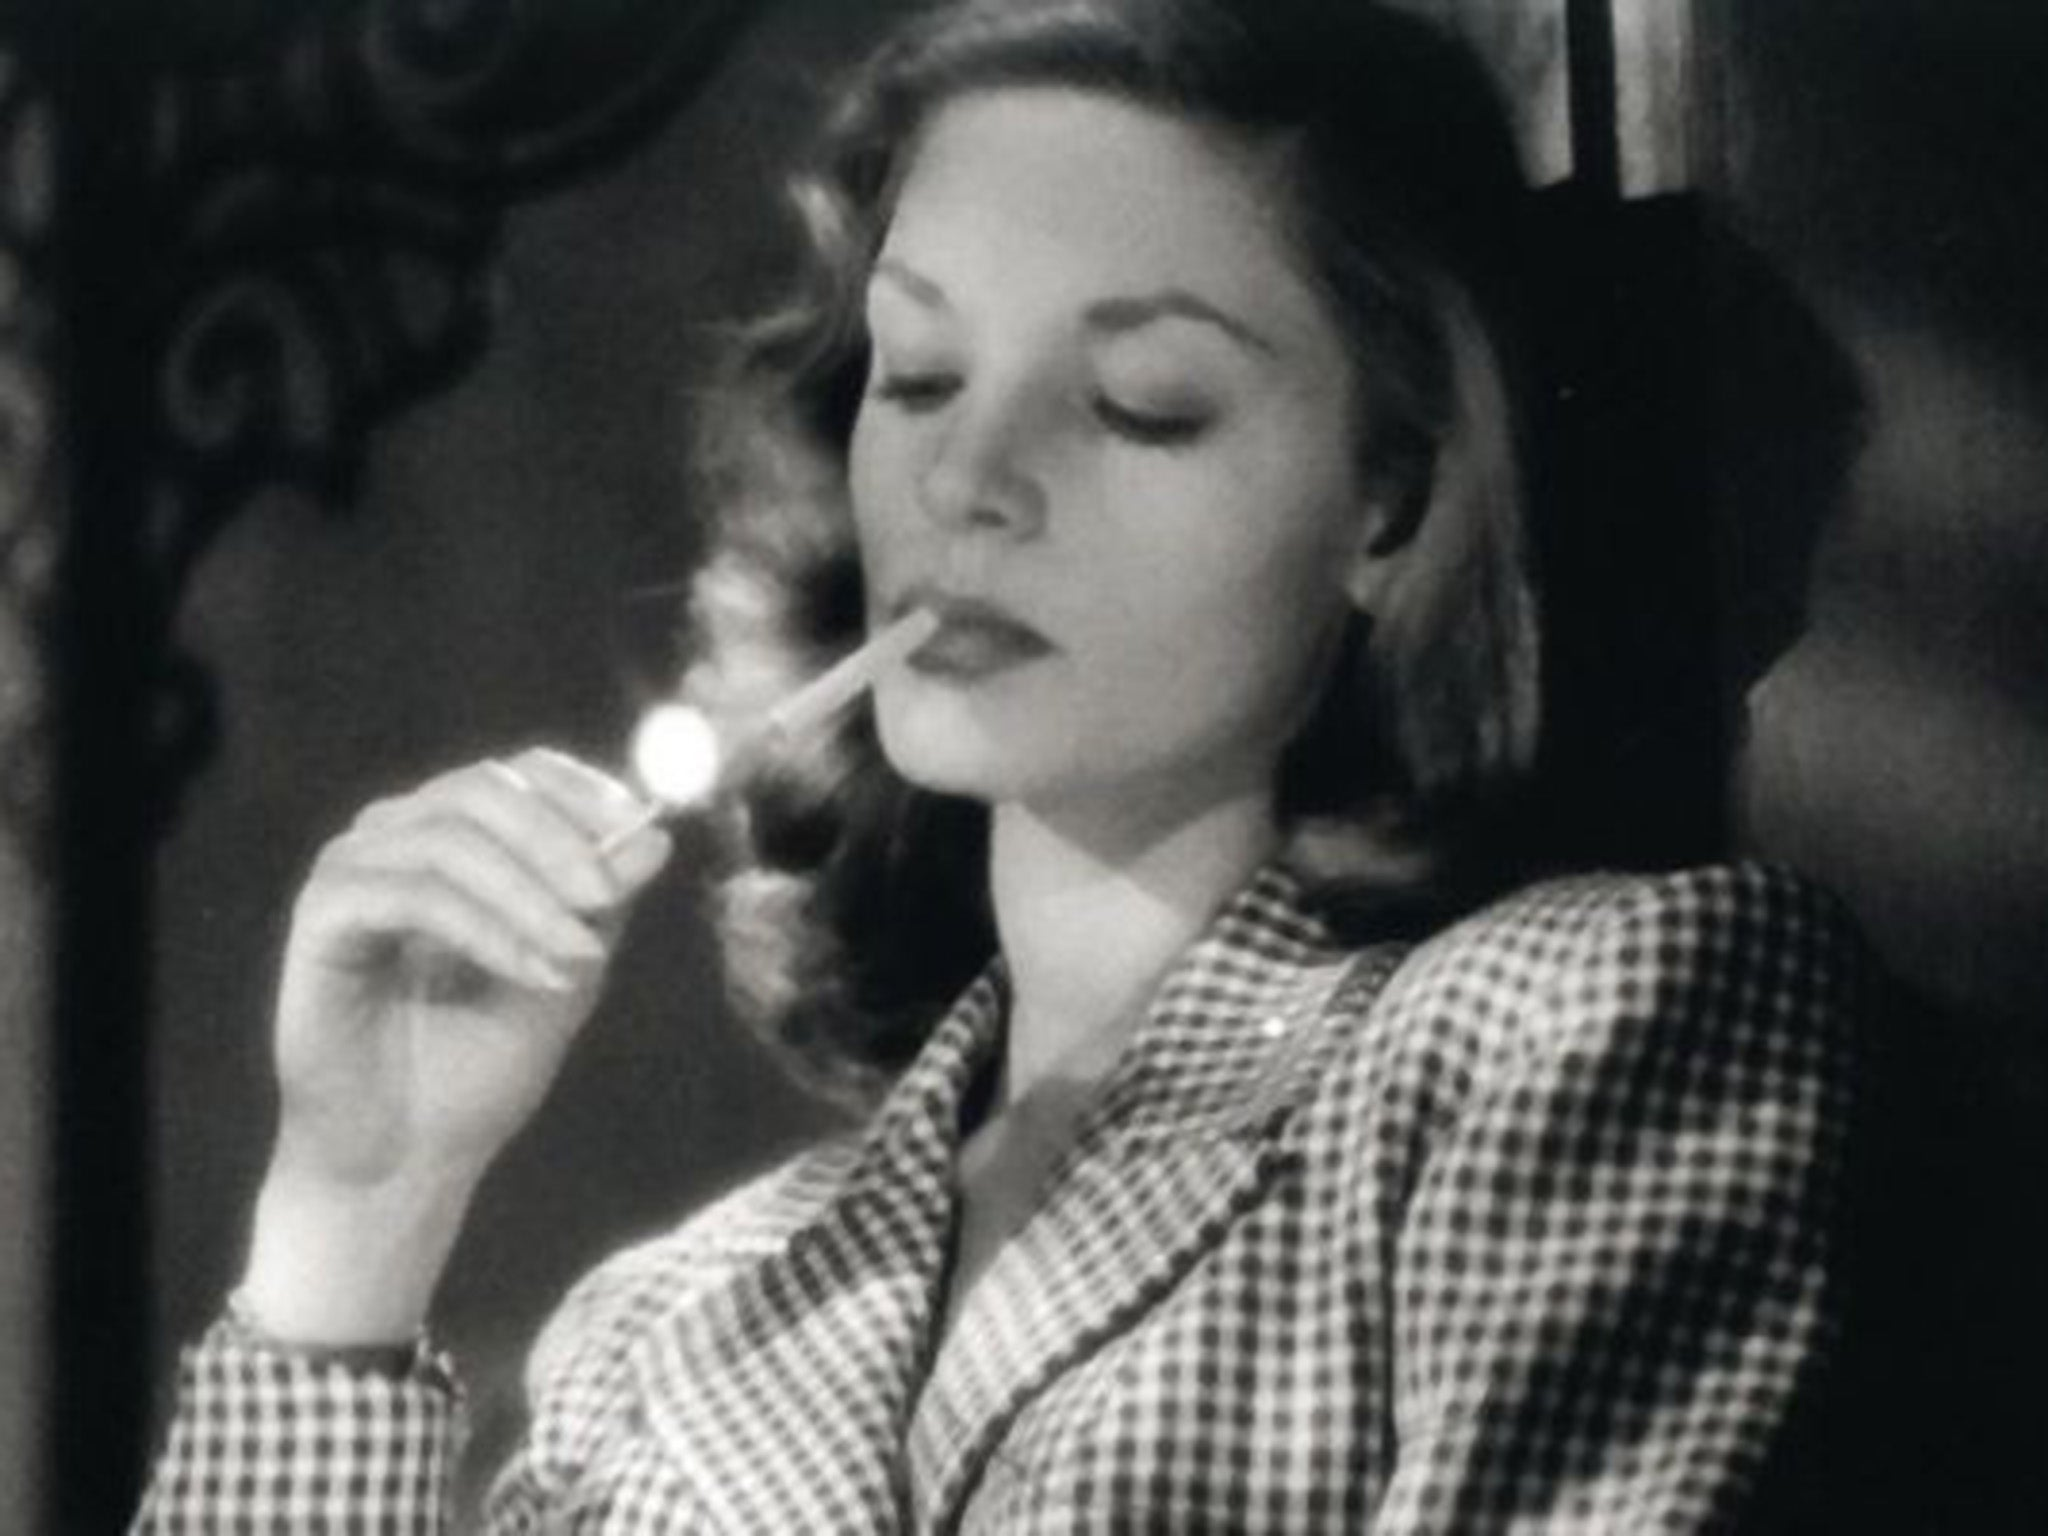 why giving films with smoking an adult rating would